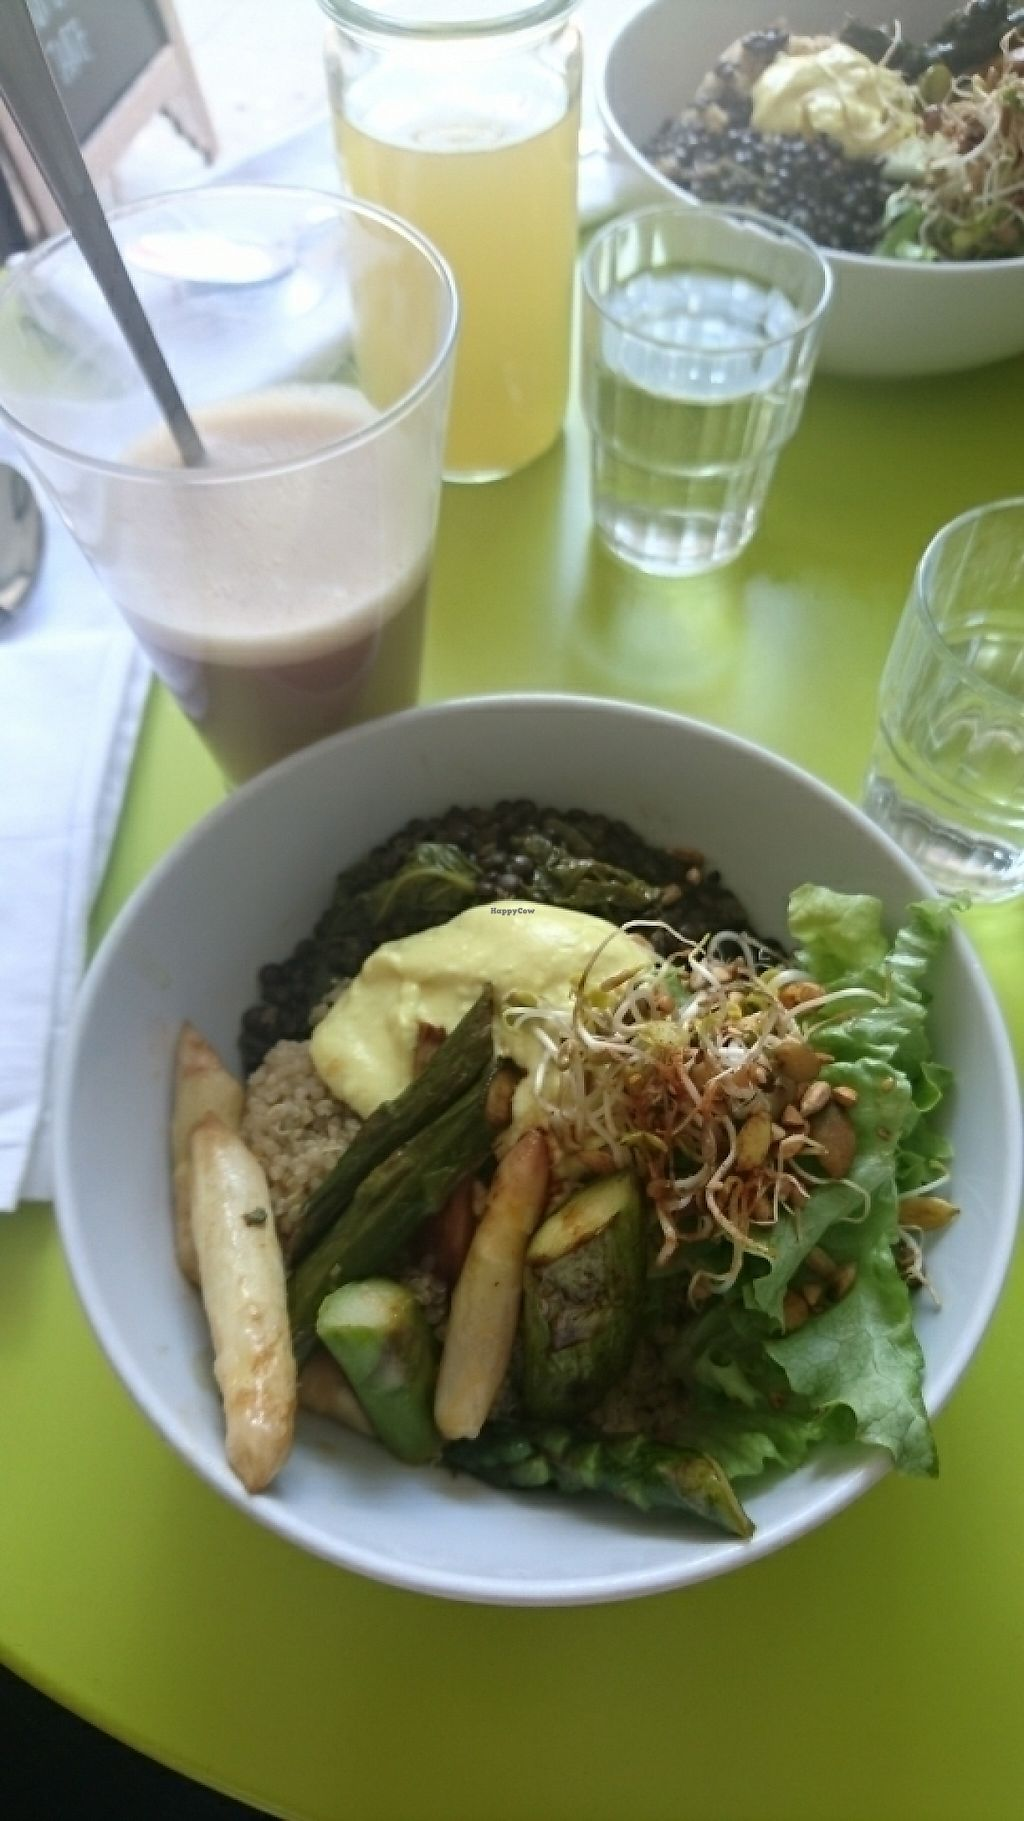 """Photo of Taracafe  by <a href=""""/members/profile/FlatEric"""">FlatEric</a> <br/>Spargel Bowl <br/> May 27, 2017  - <a href='/contact/abuse/image/43386/262943'>Report</a>"""